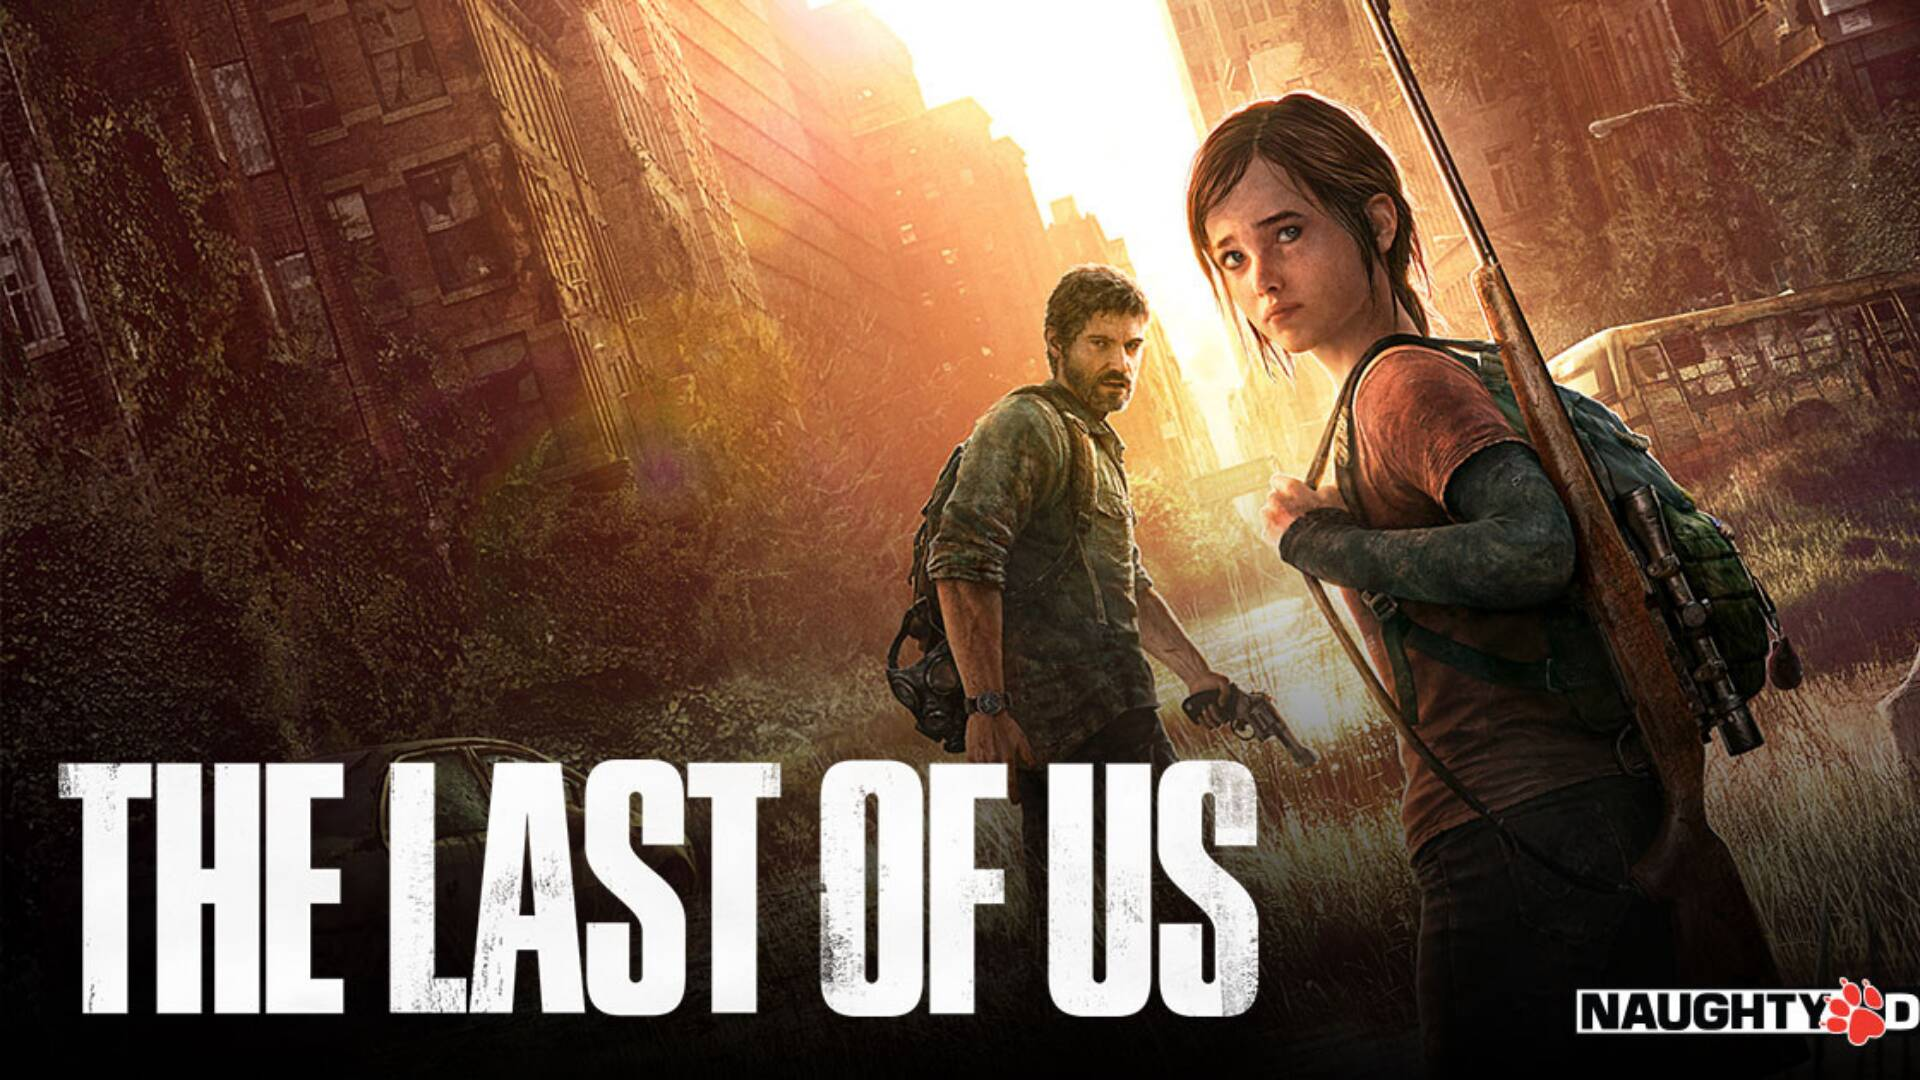 The Last of Us Board Game